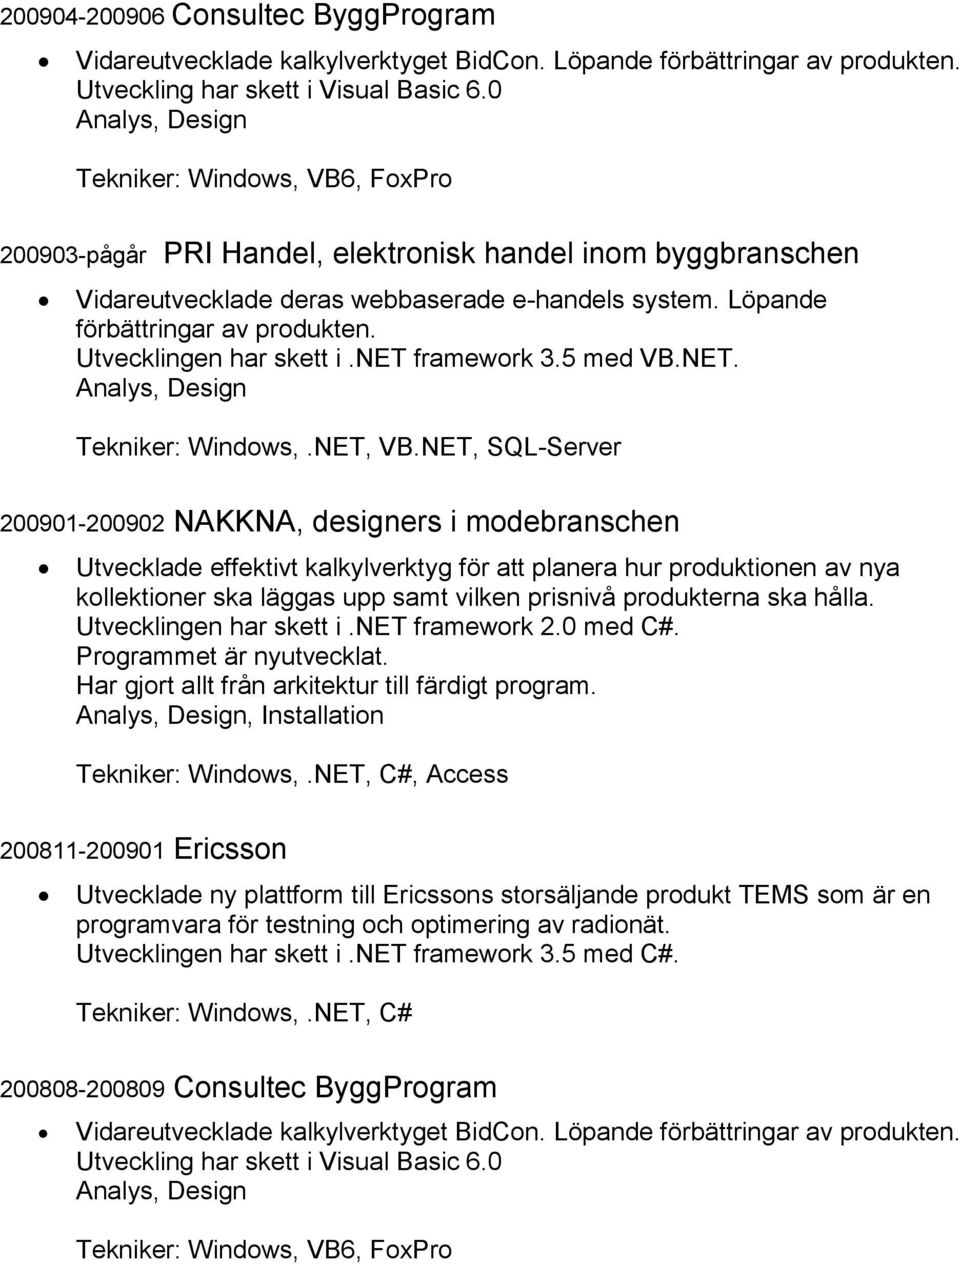 Utvecklingen har skett i.net framework 3.5 med VB.NET. Tekniker: Windows,.NET, VB.